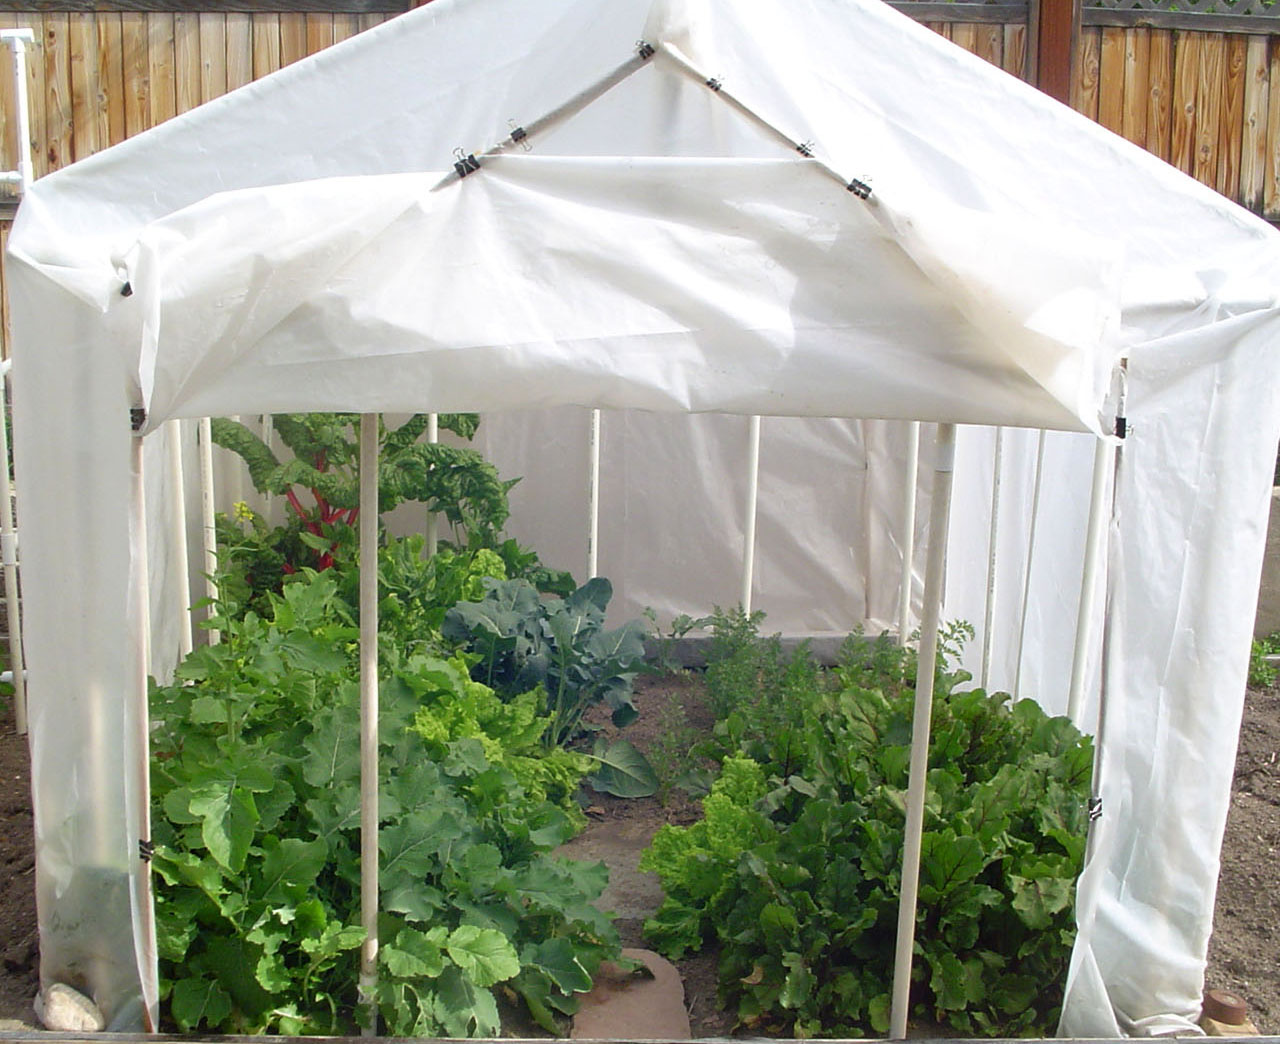 More food from small spaces by margaret park - Small space farming image ...